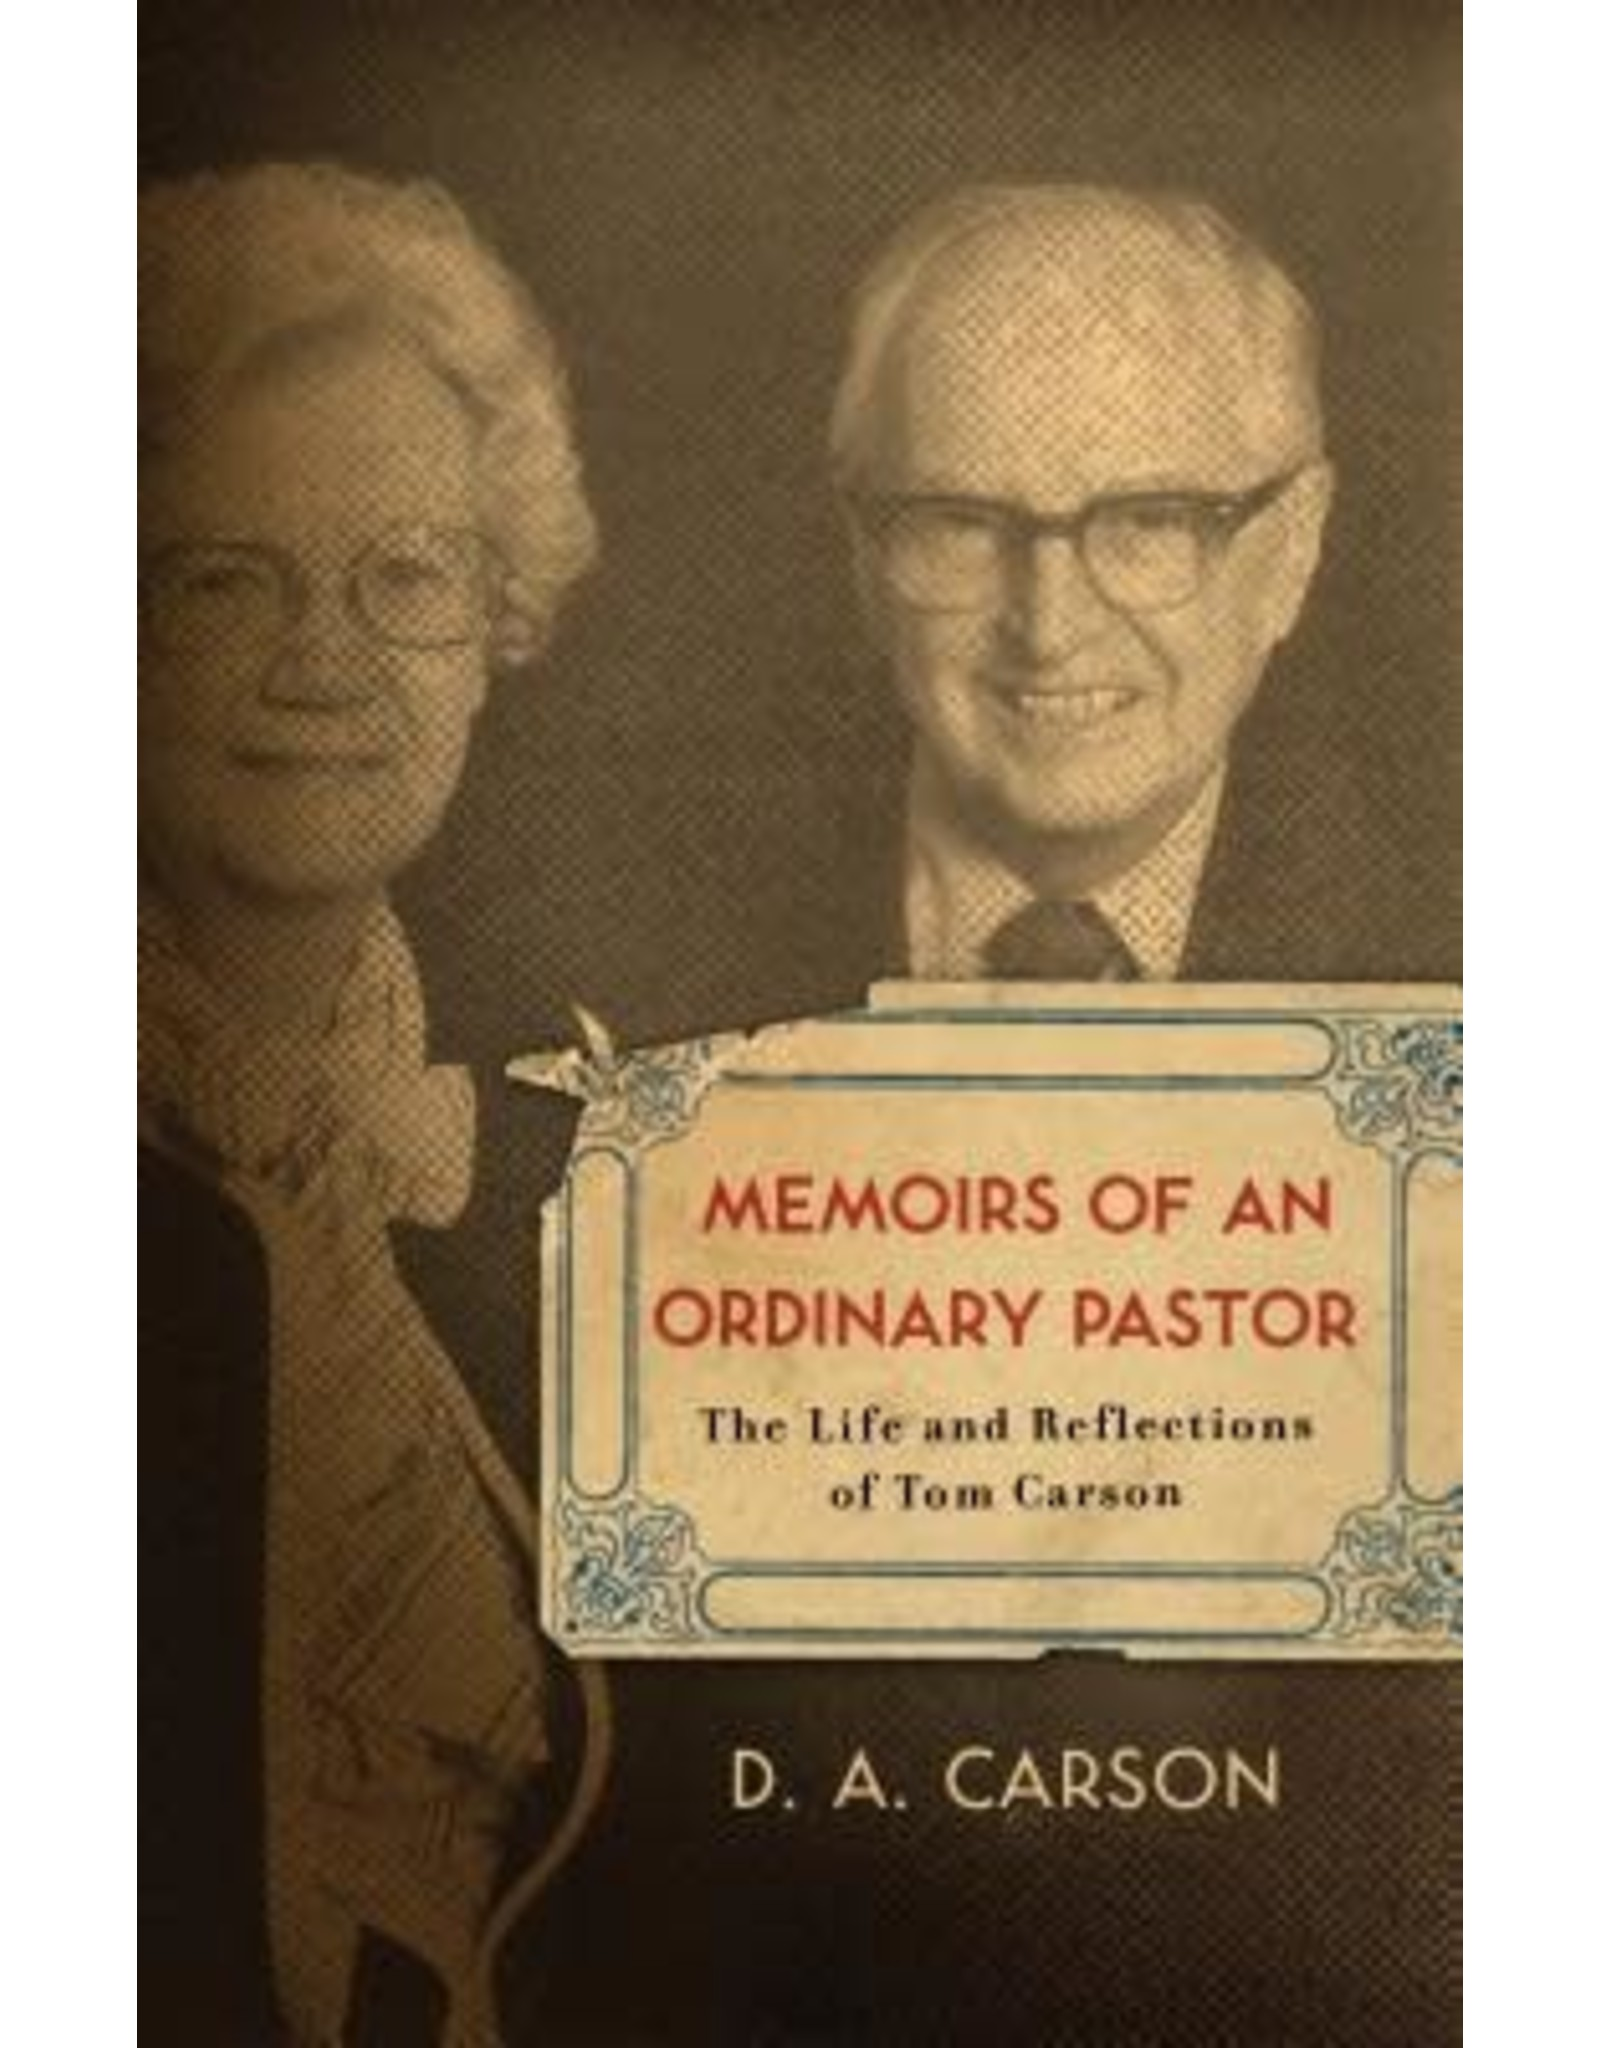 Carson Memoirs of an Ordinary Pastor: The Life and Reflections of Tom Carson